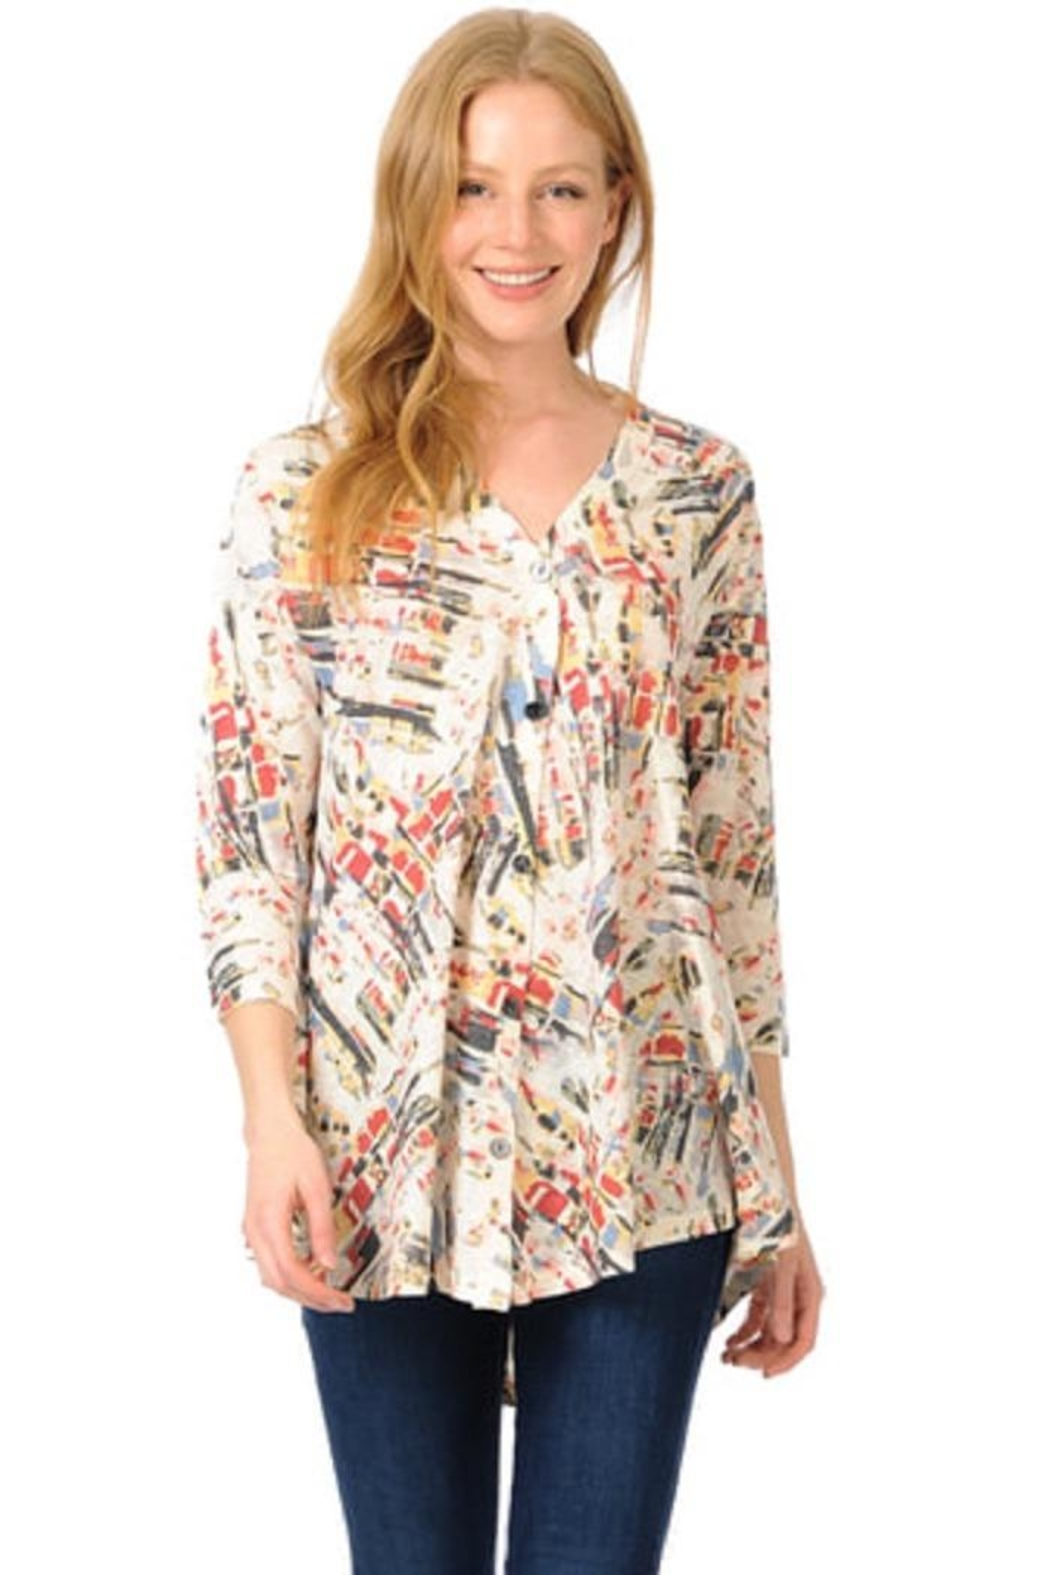 Cubism Colorful Button-Up Cardigan - Main Image